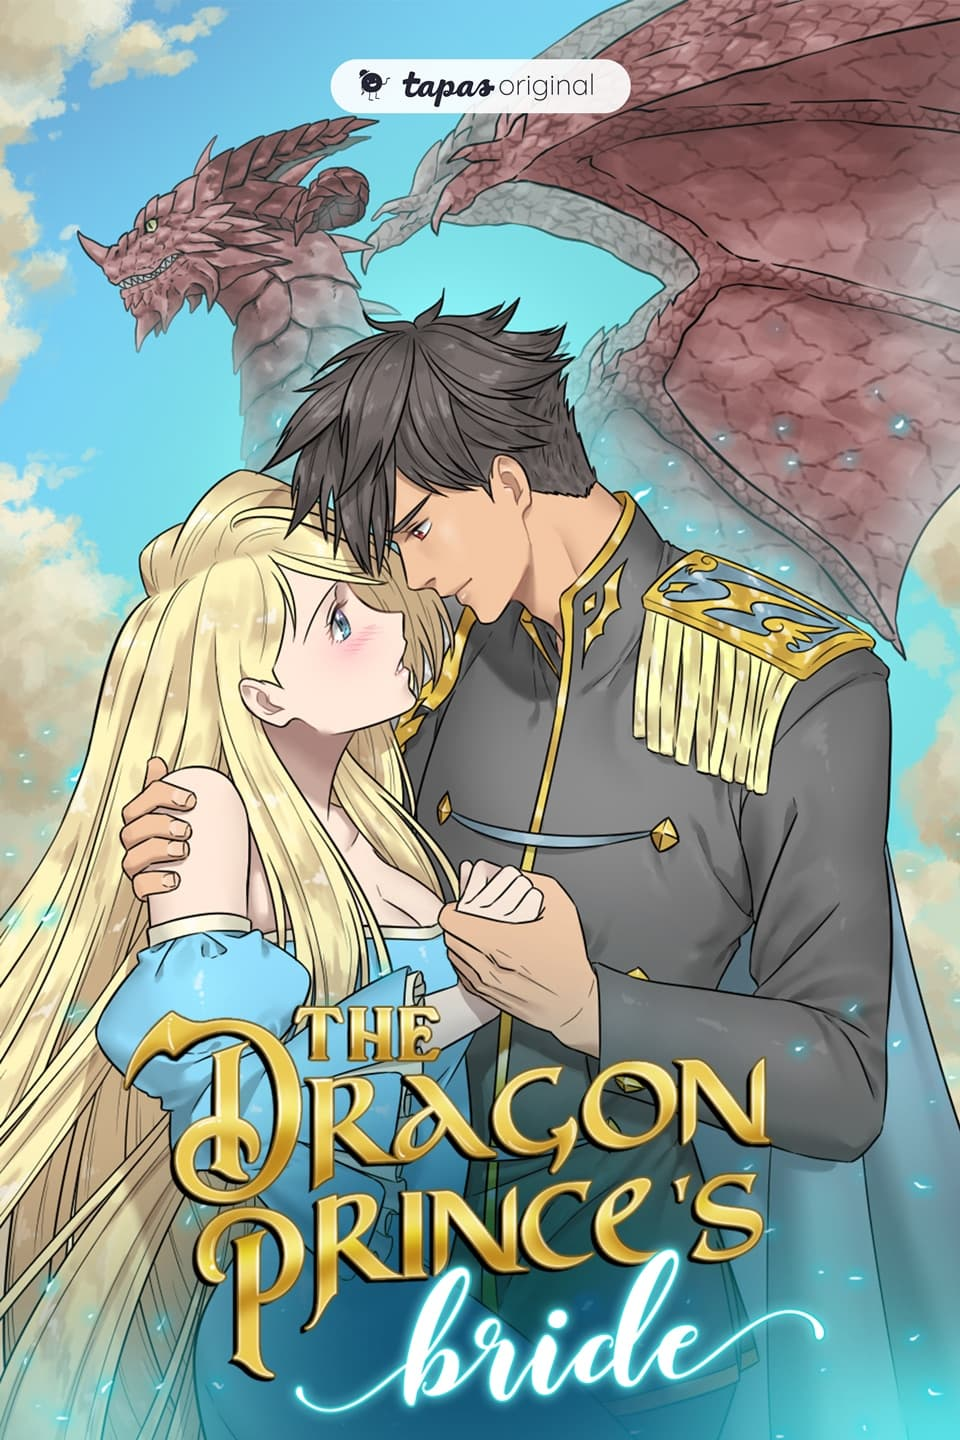 The Dragon Prince's Bride ตอนที่ 1